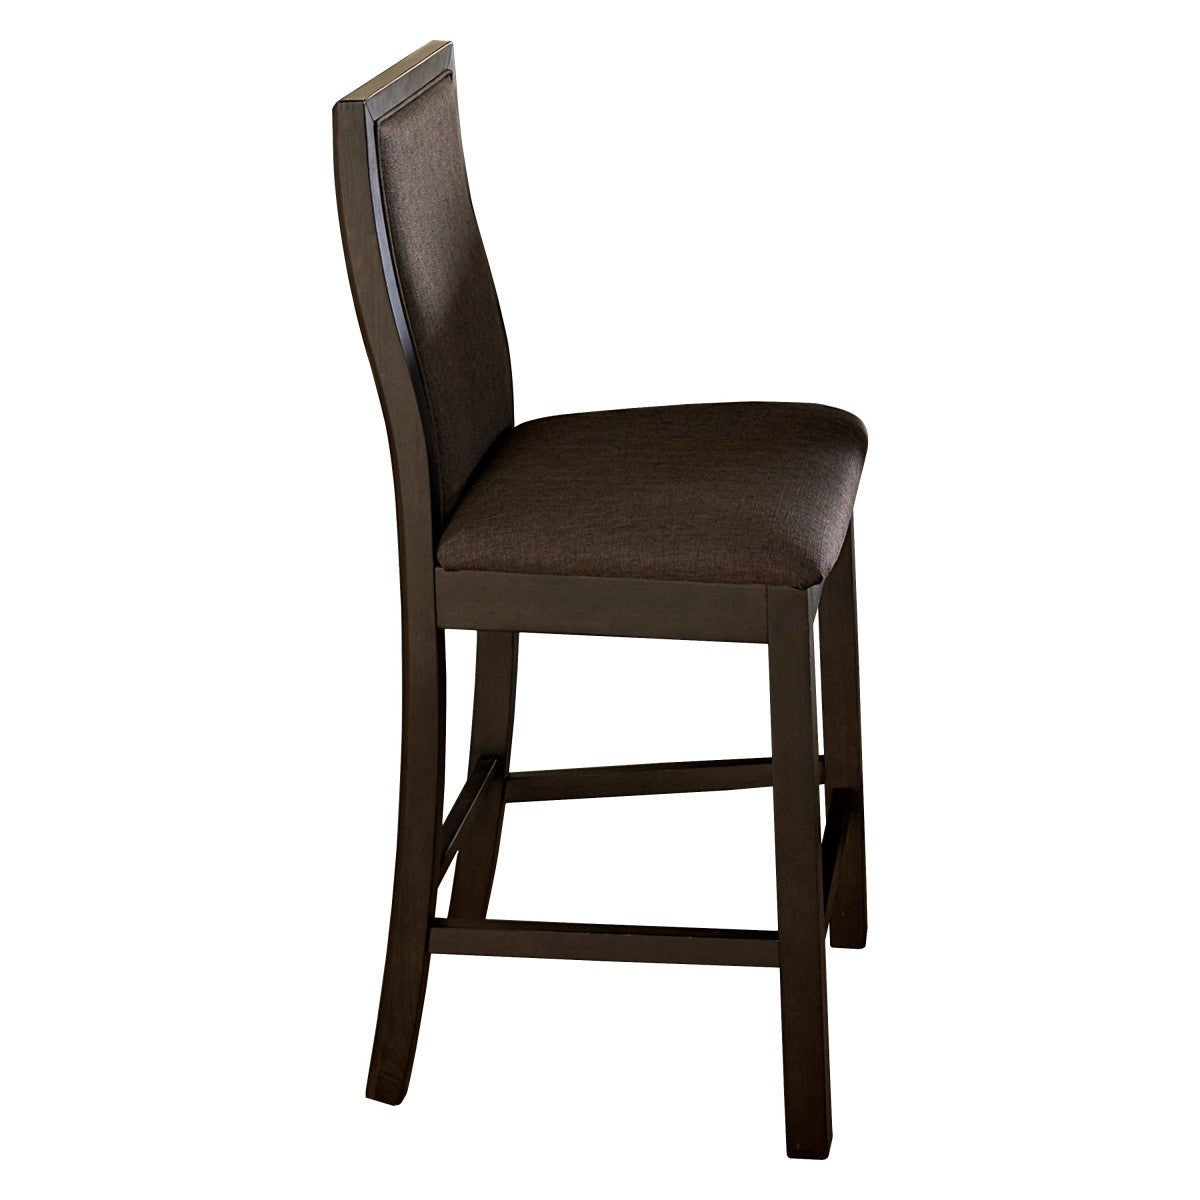 Homelegance Compson Walnut Wood And Leather Finish 2 Piece Counter Height Dining Chair